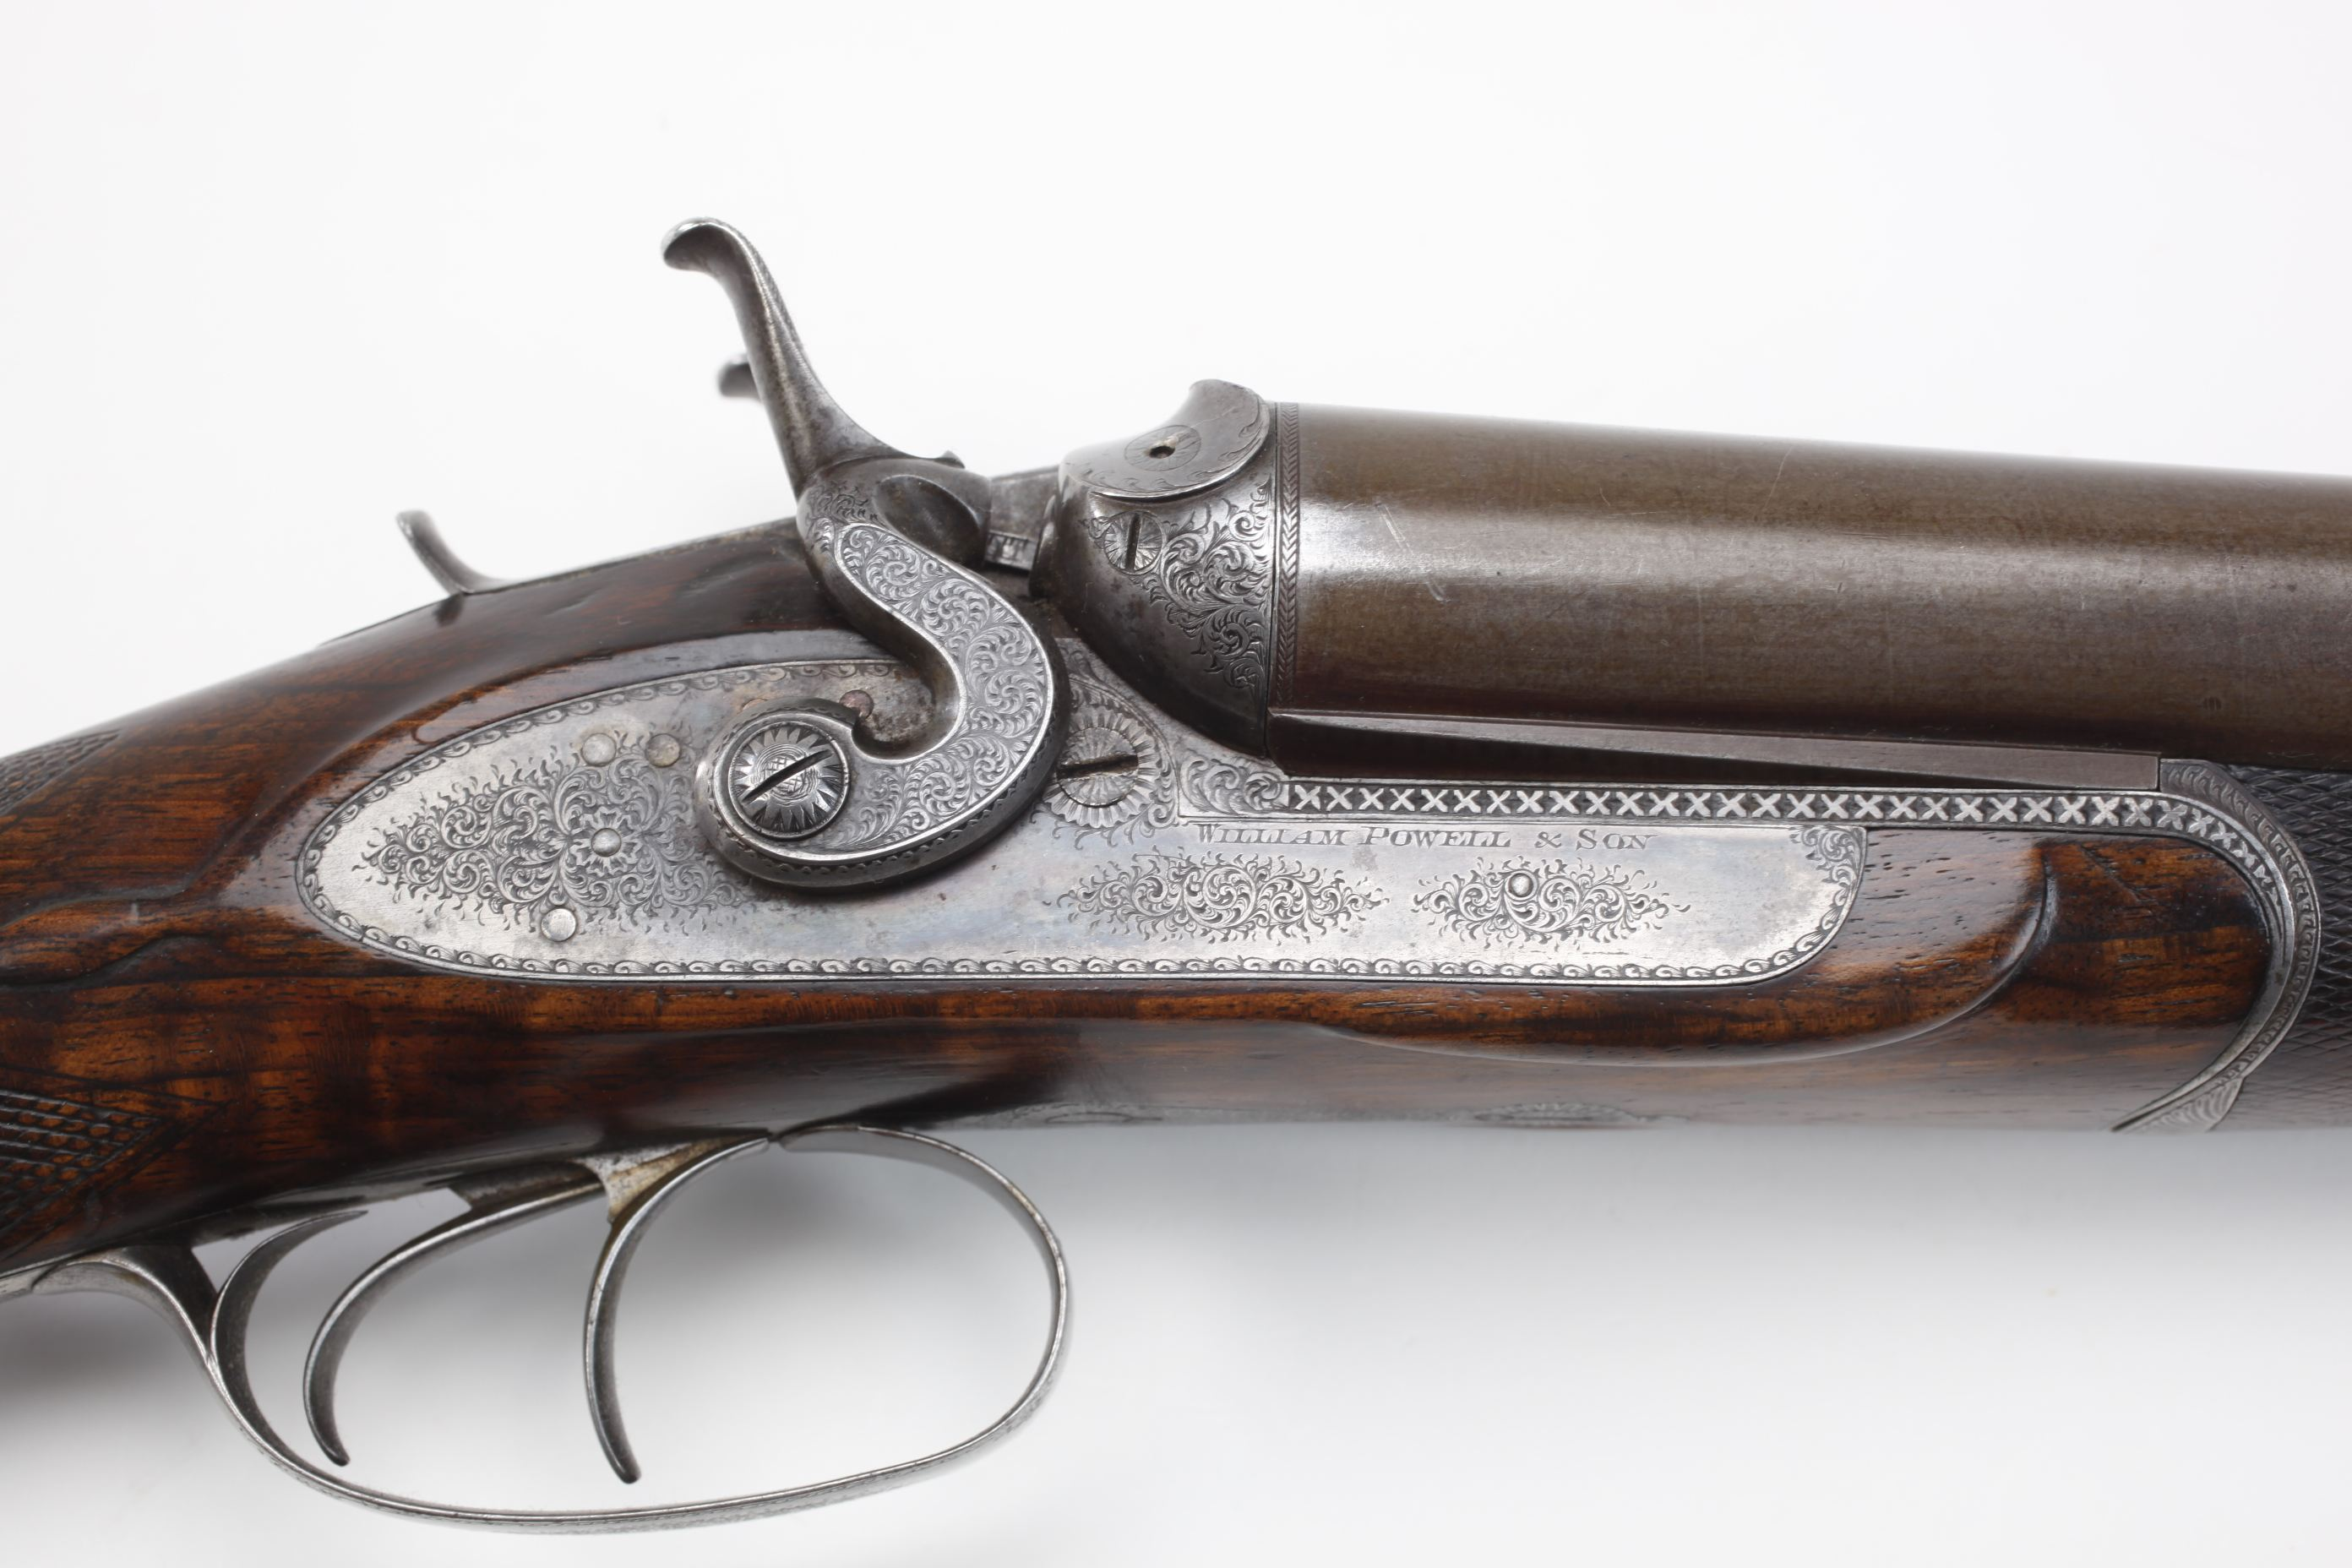 William Powell & Son Side by Side Lifter Action Hammer Shotgun